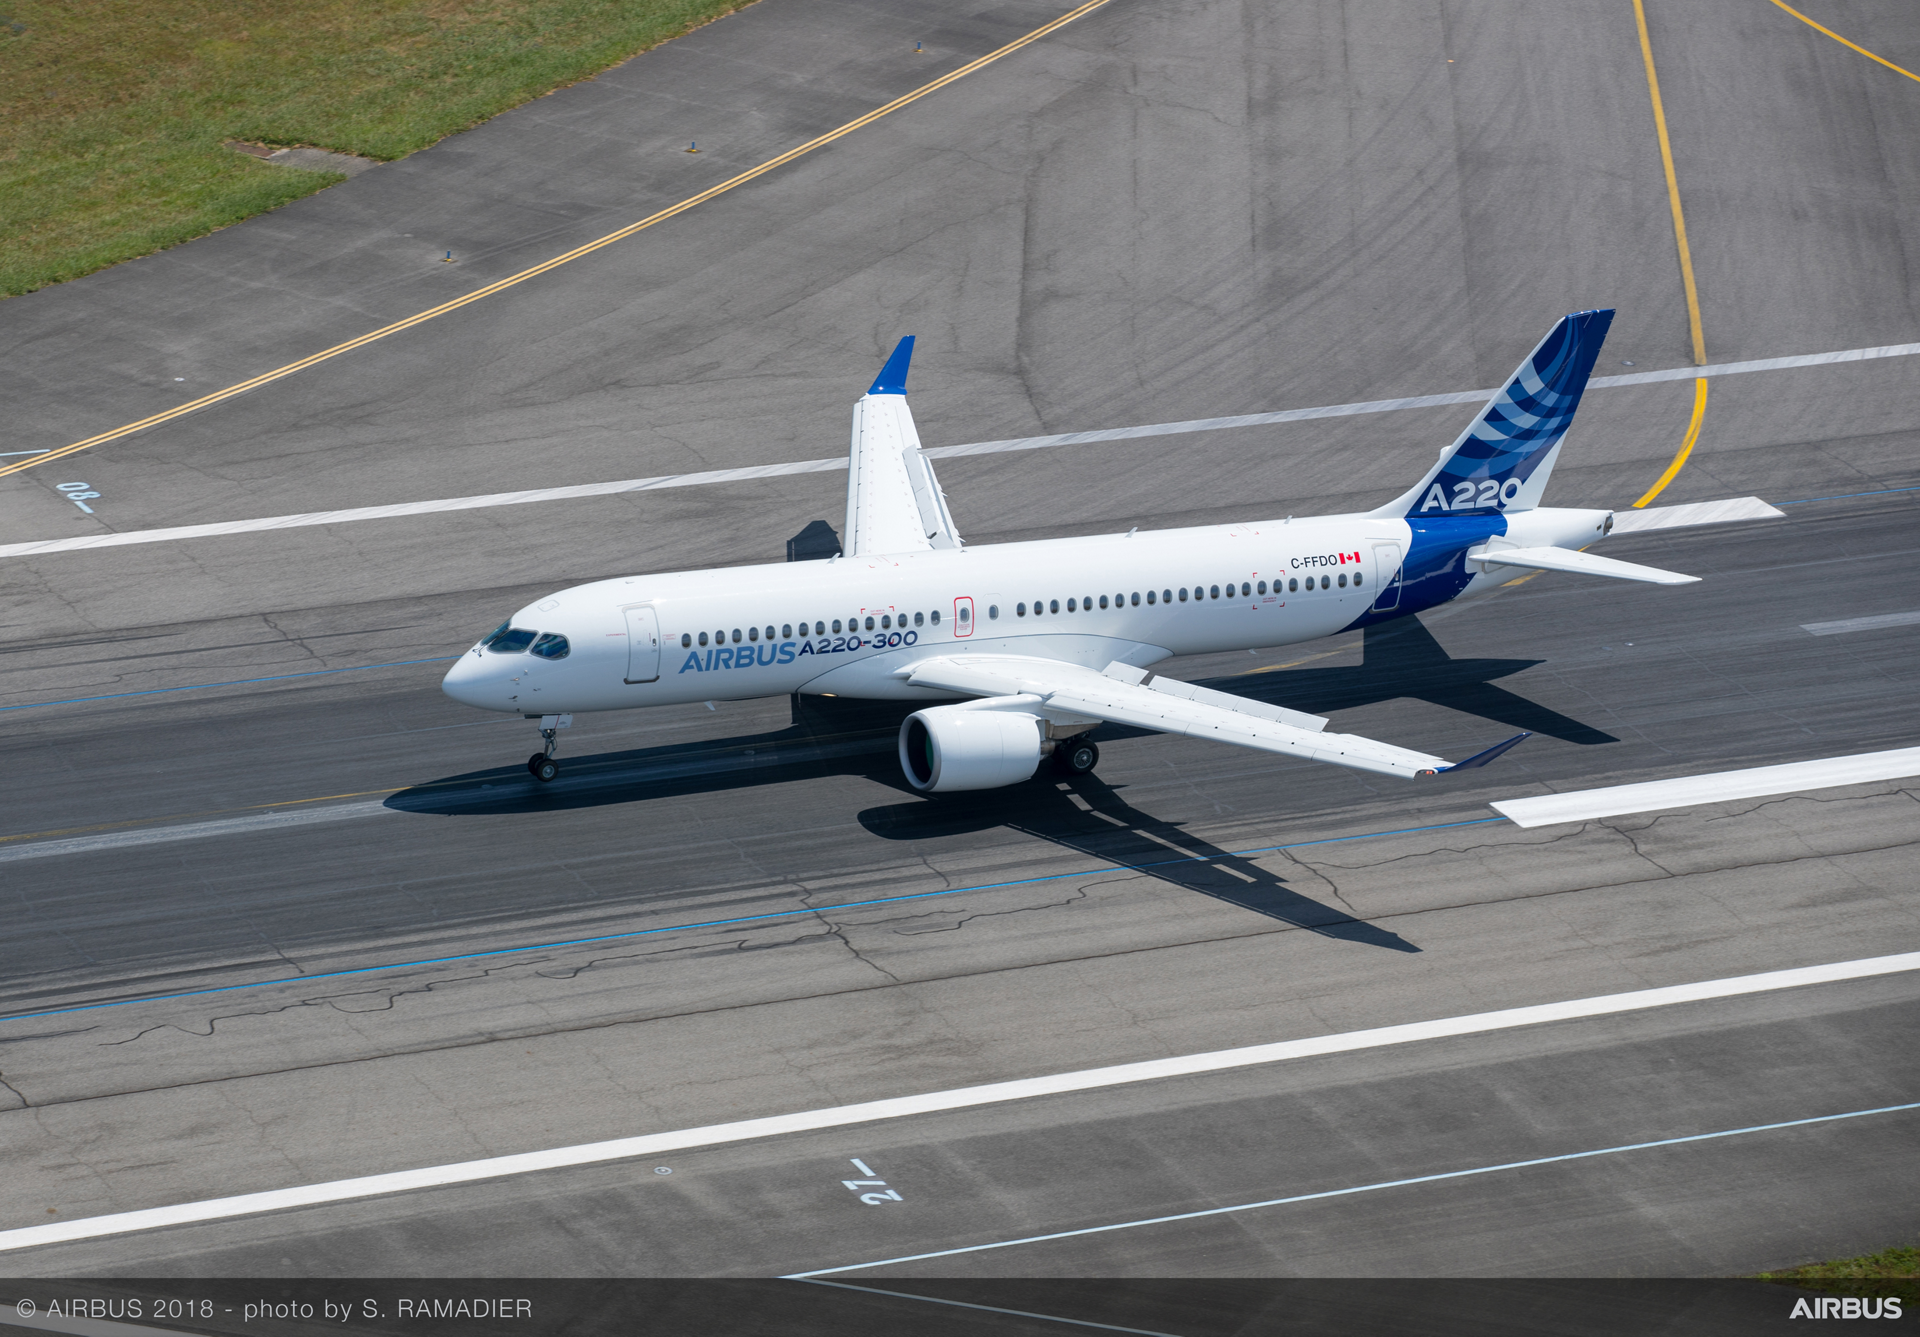 The A220-300 completes its runway rollout at France's Toulouse-Blagnac Airport for the reveal of the single-aisle A220 Family's new identity at Airbus' headquarters operation in France